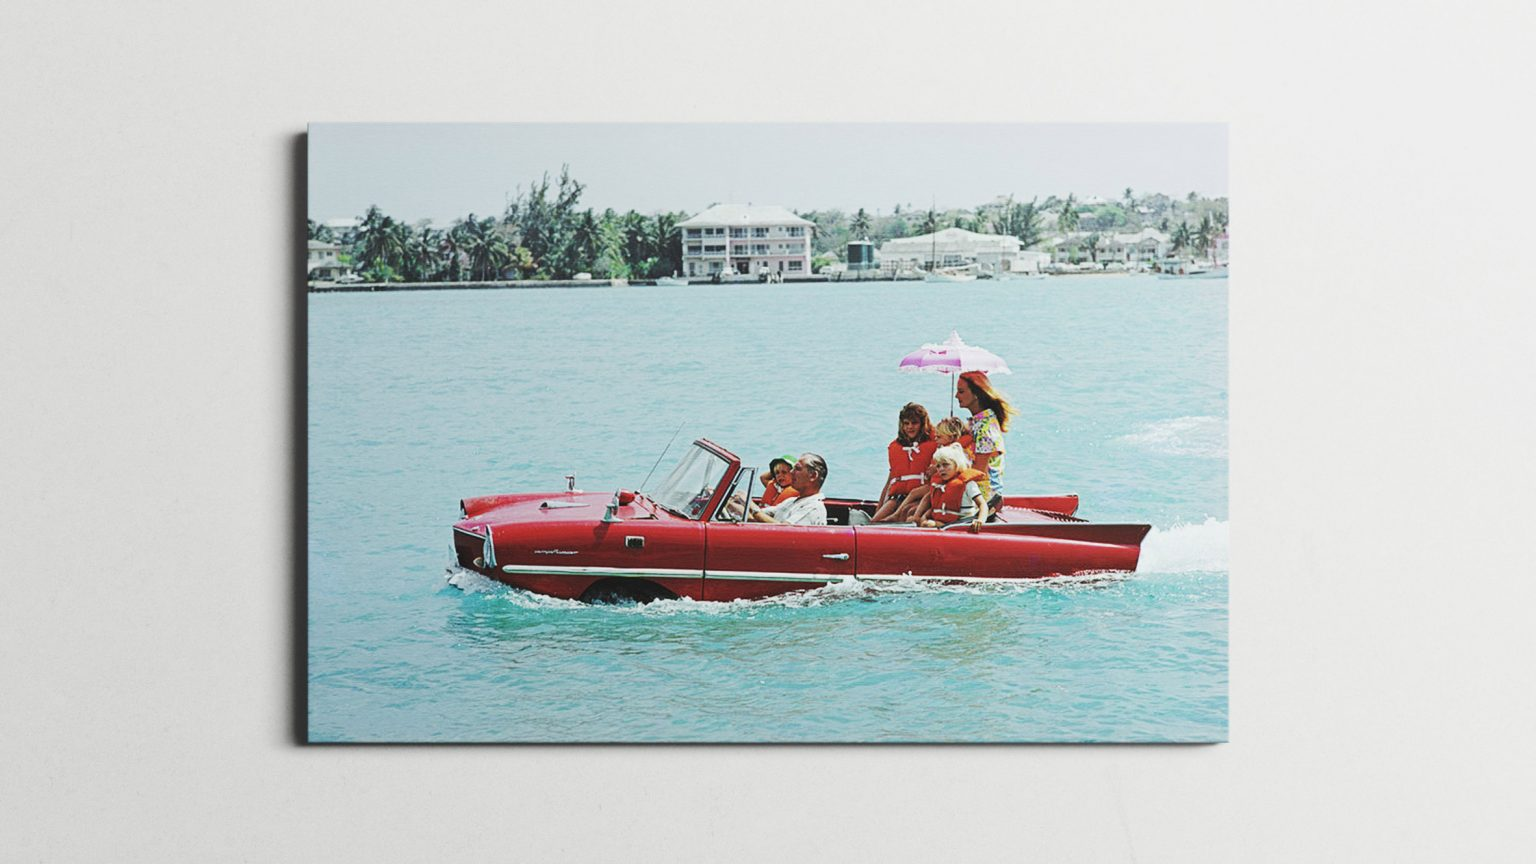 Slim Aarons' photography made available as prints by Fine Art America - This Is What We Are Reading For You